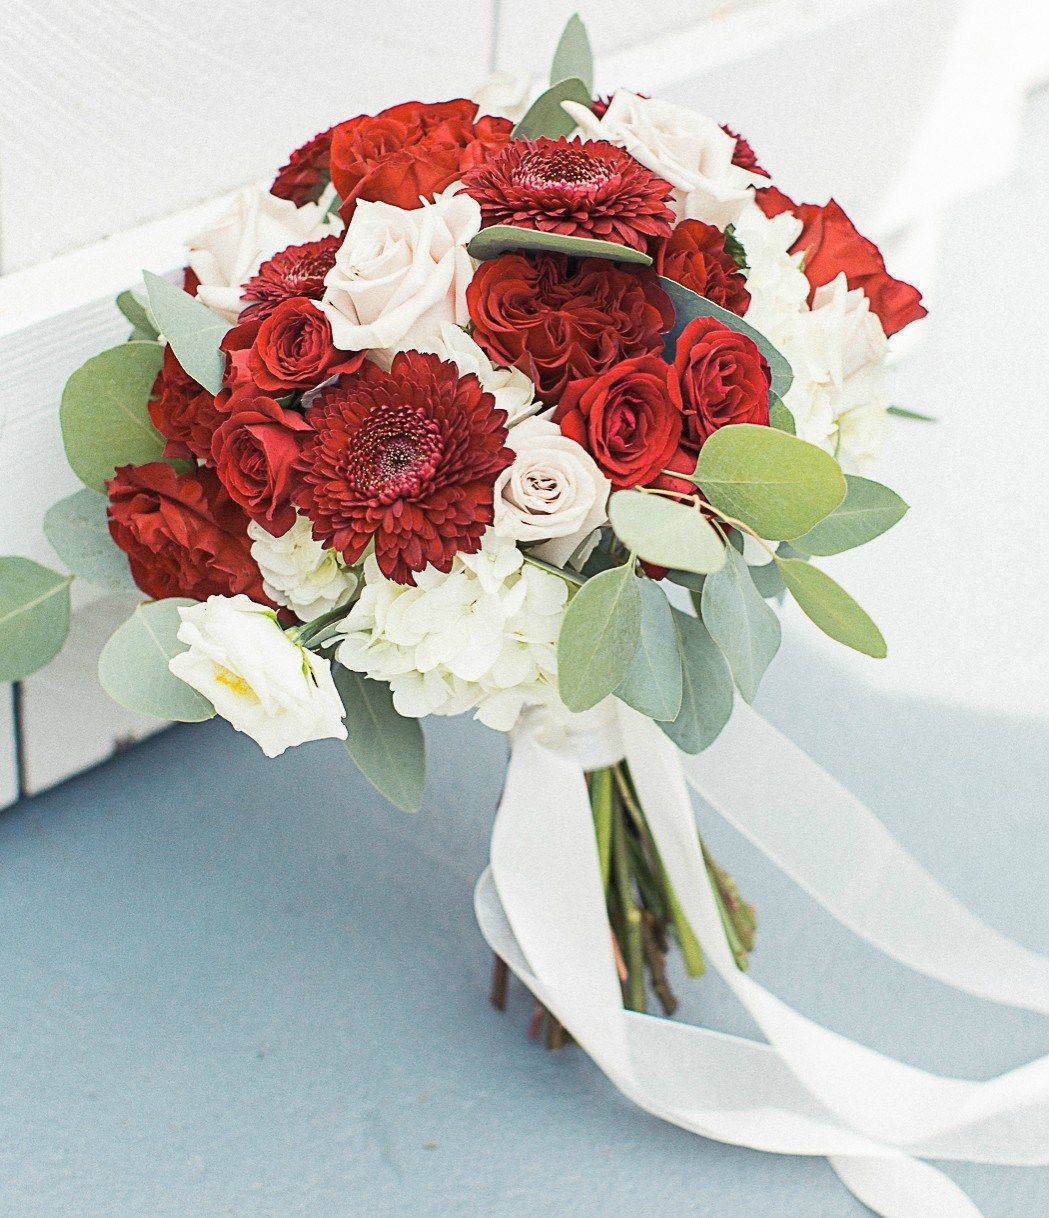 Pin on Burgundy and White Wedding Flowers